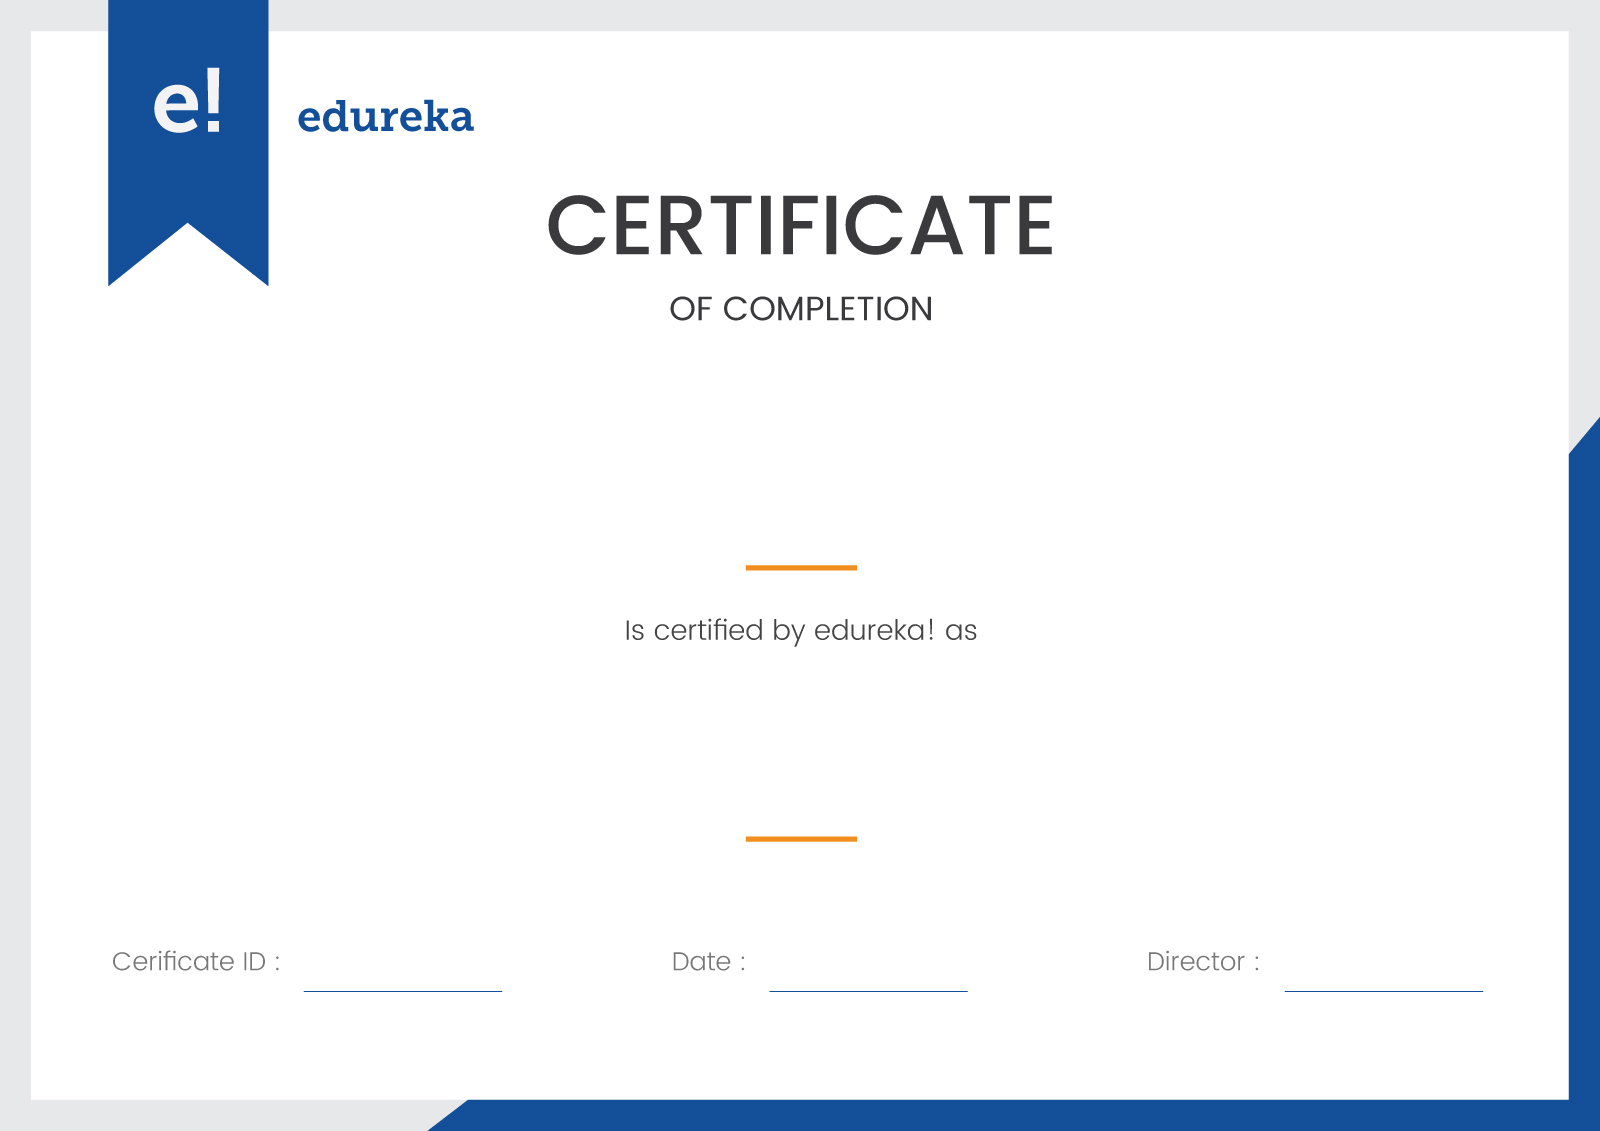 Data science course data science certification training edureka sapmle certificate sapmle certificate 1betcityfo Gallery